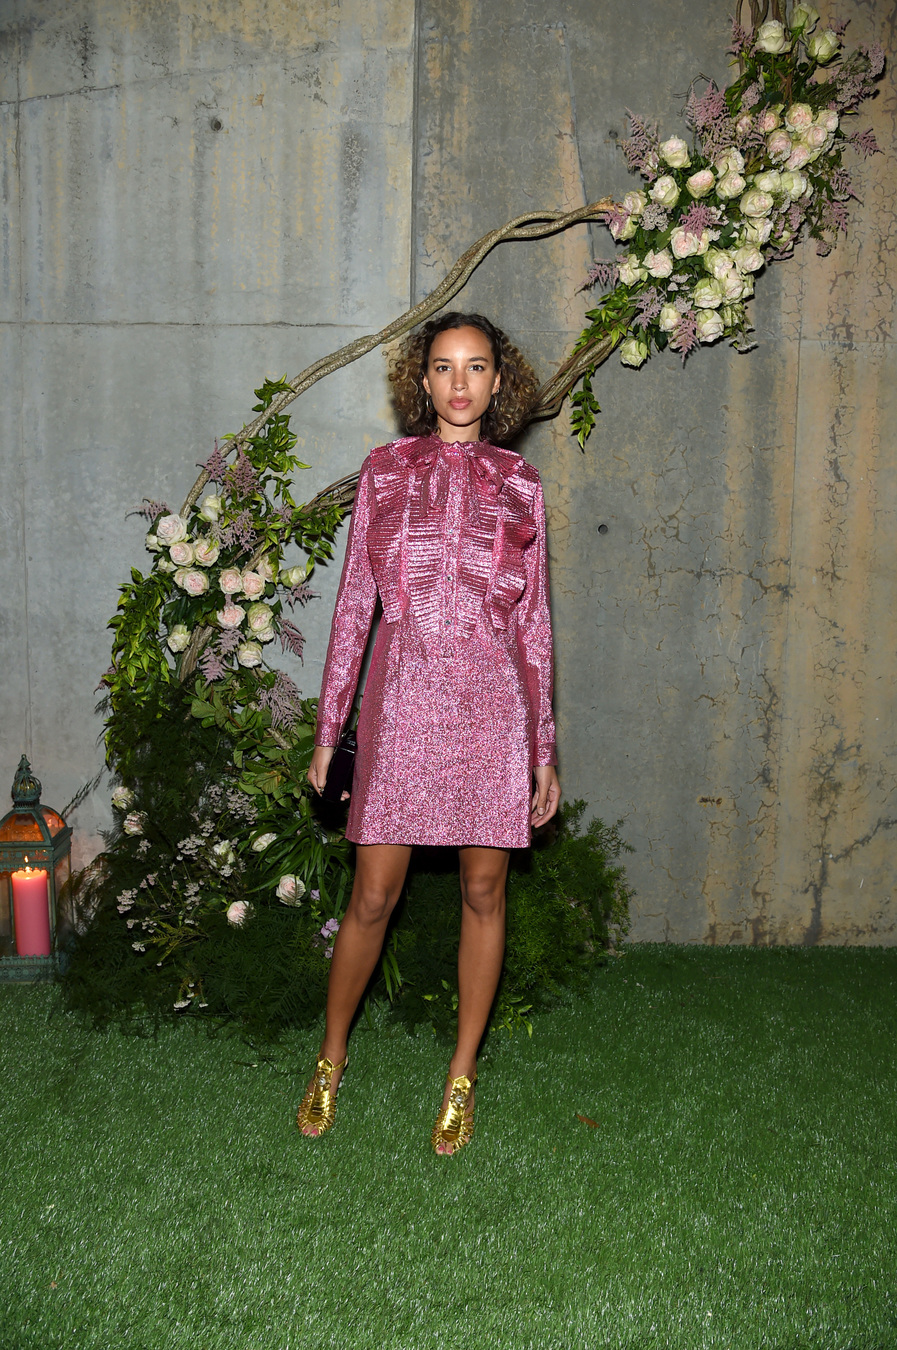 NEW YORK, NY - MAY 02: Phoebe Collings-James attends the Gucci Bloom Fragrance Launch at MoMA PS.1 on May 2, 2017 in New York City. (Photo by Jamie McCarthy/Getty Images for Gucci)